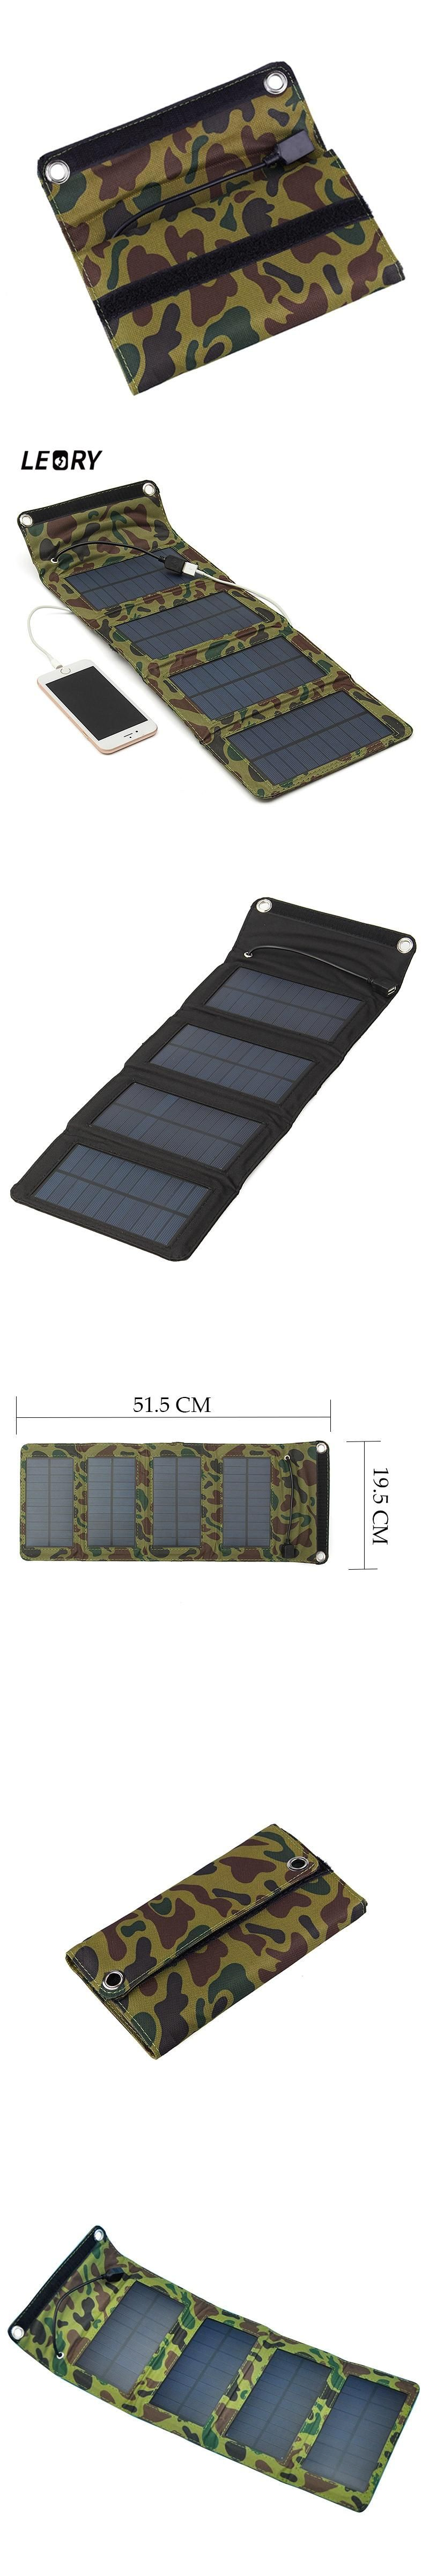 portable 7w outdoor solar panel foldable camping travel solar